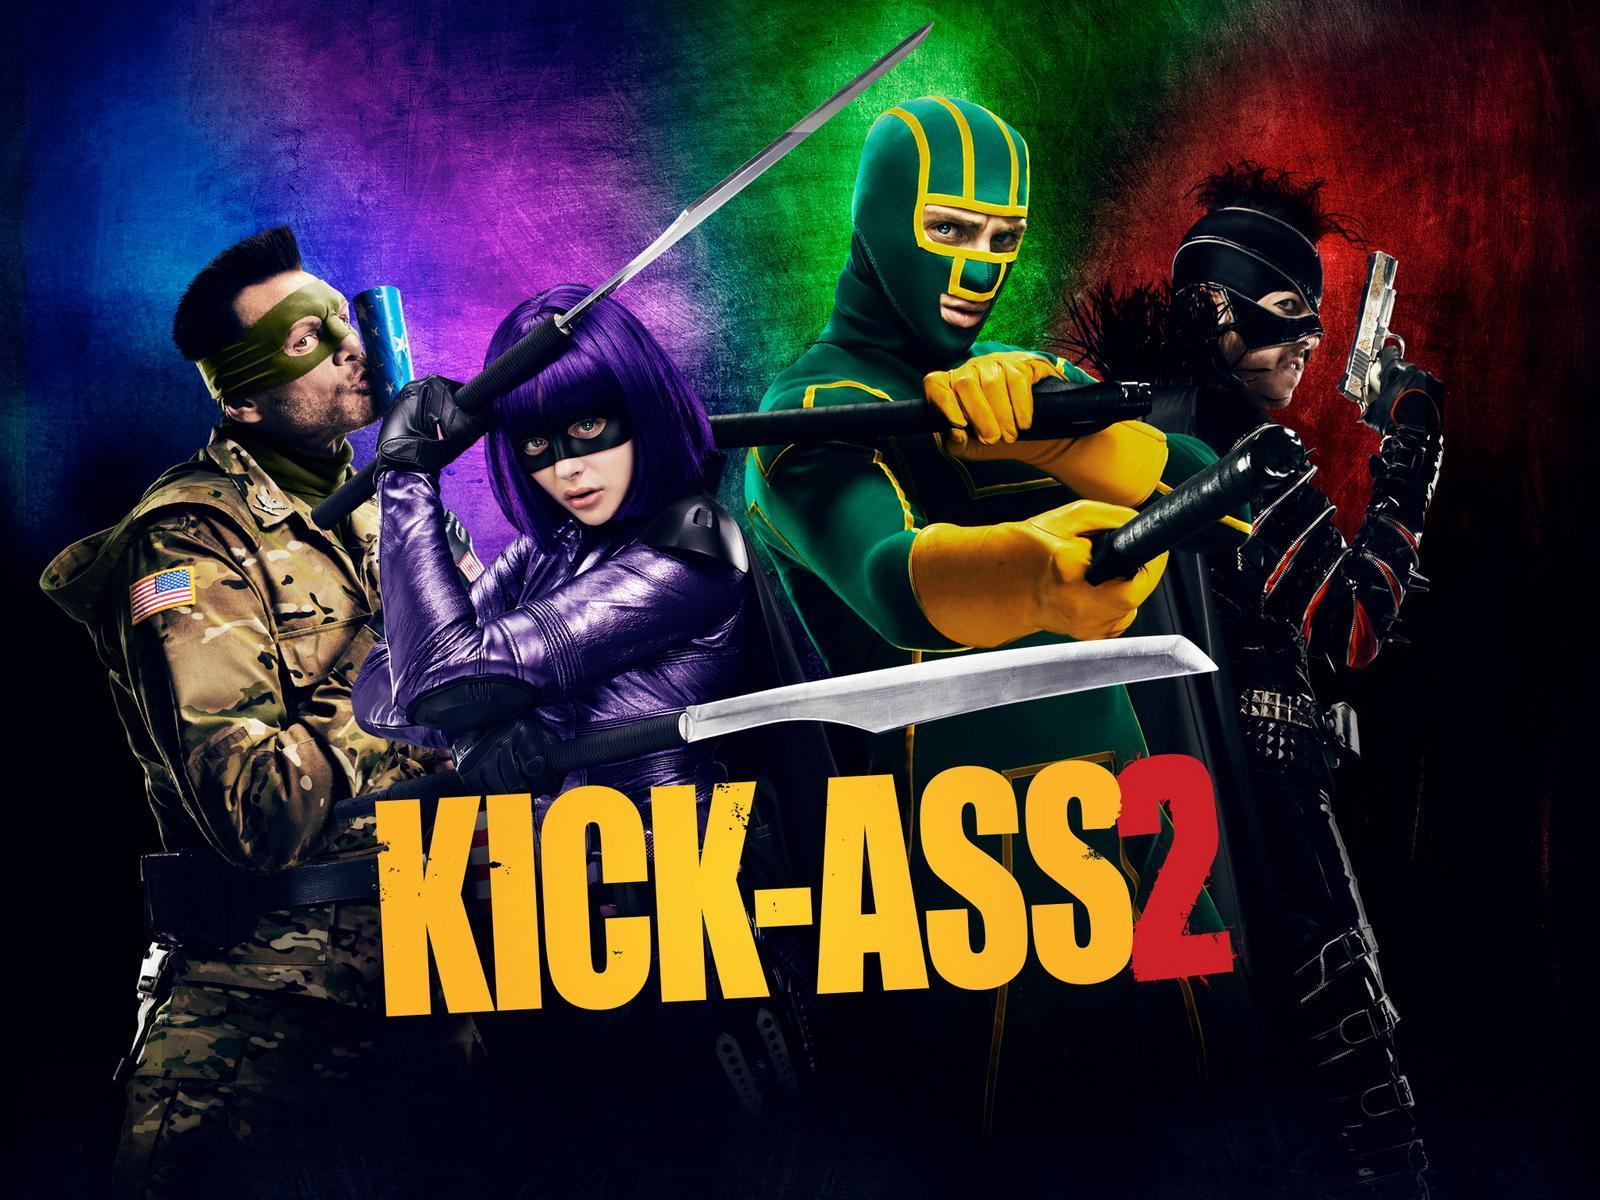 Kick Ass 2 Balls to the Wall Windows 8 Movies Theme